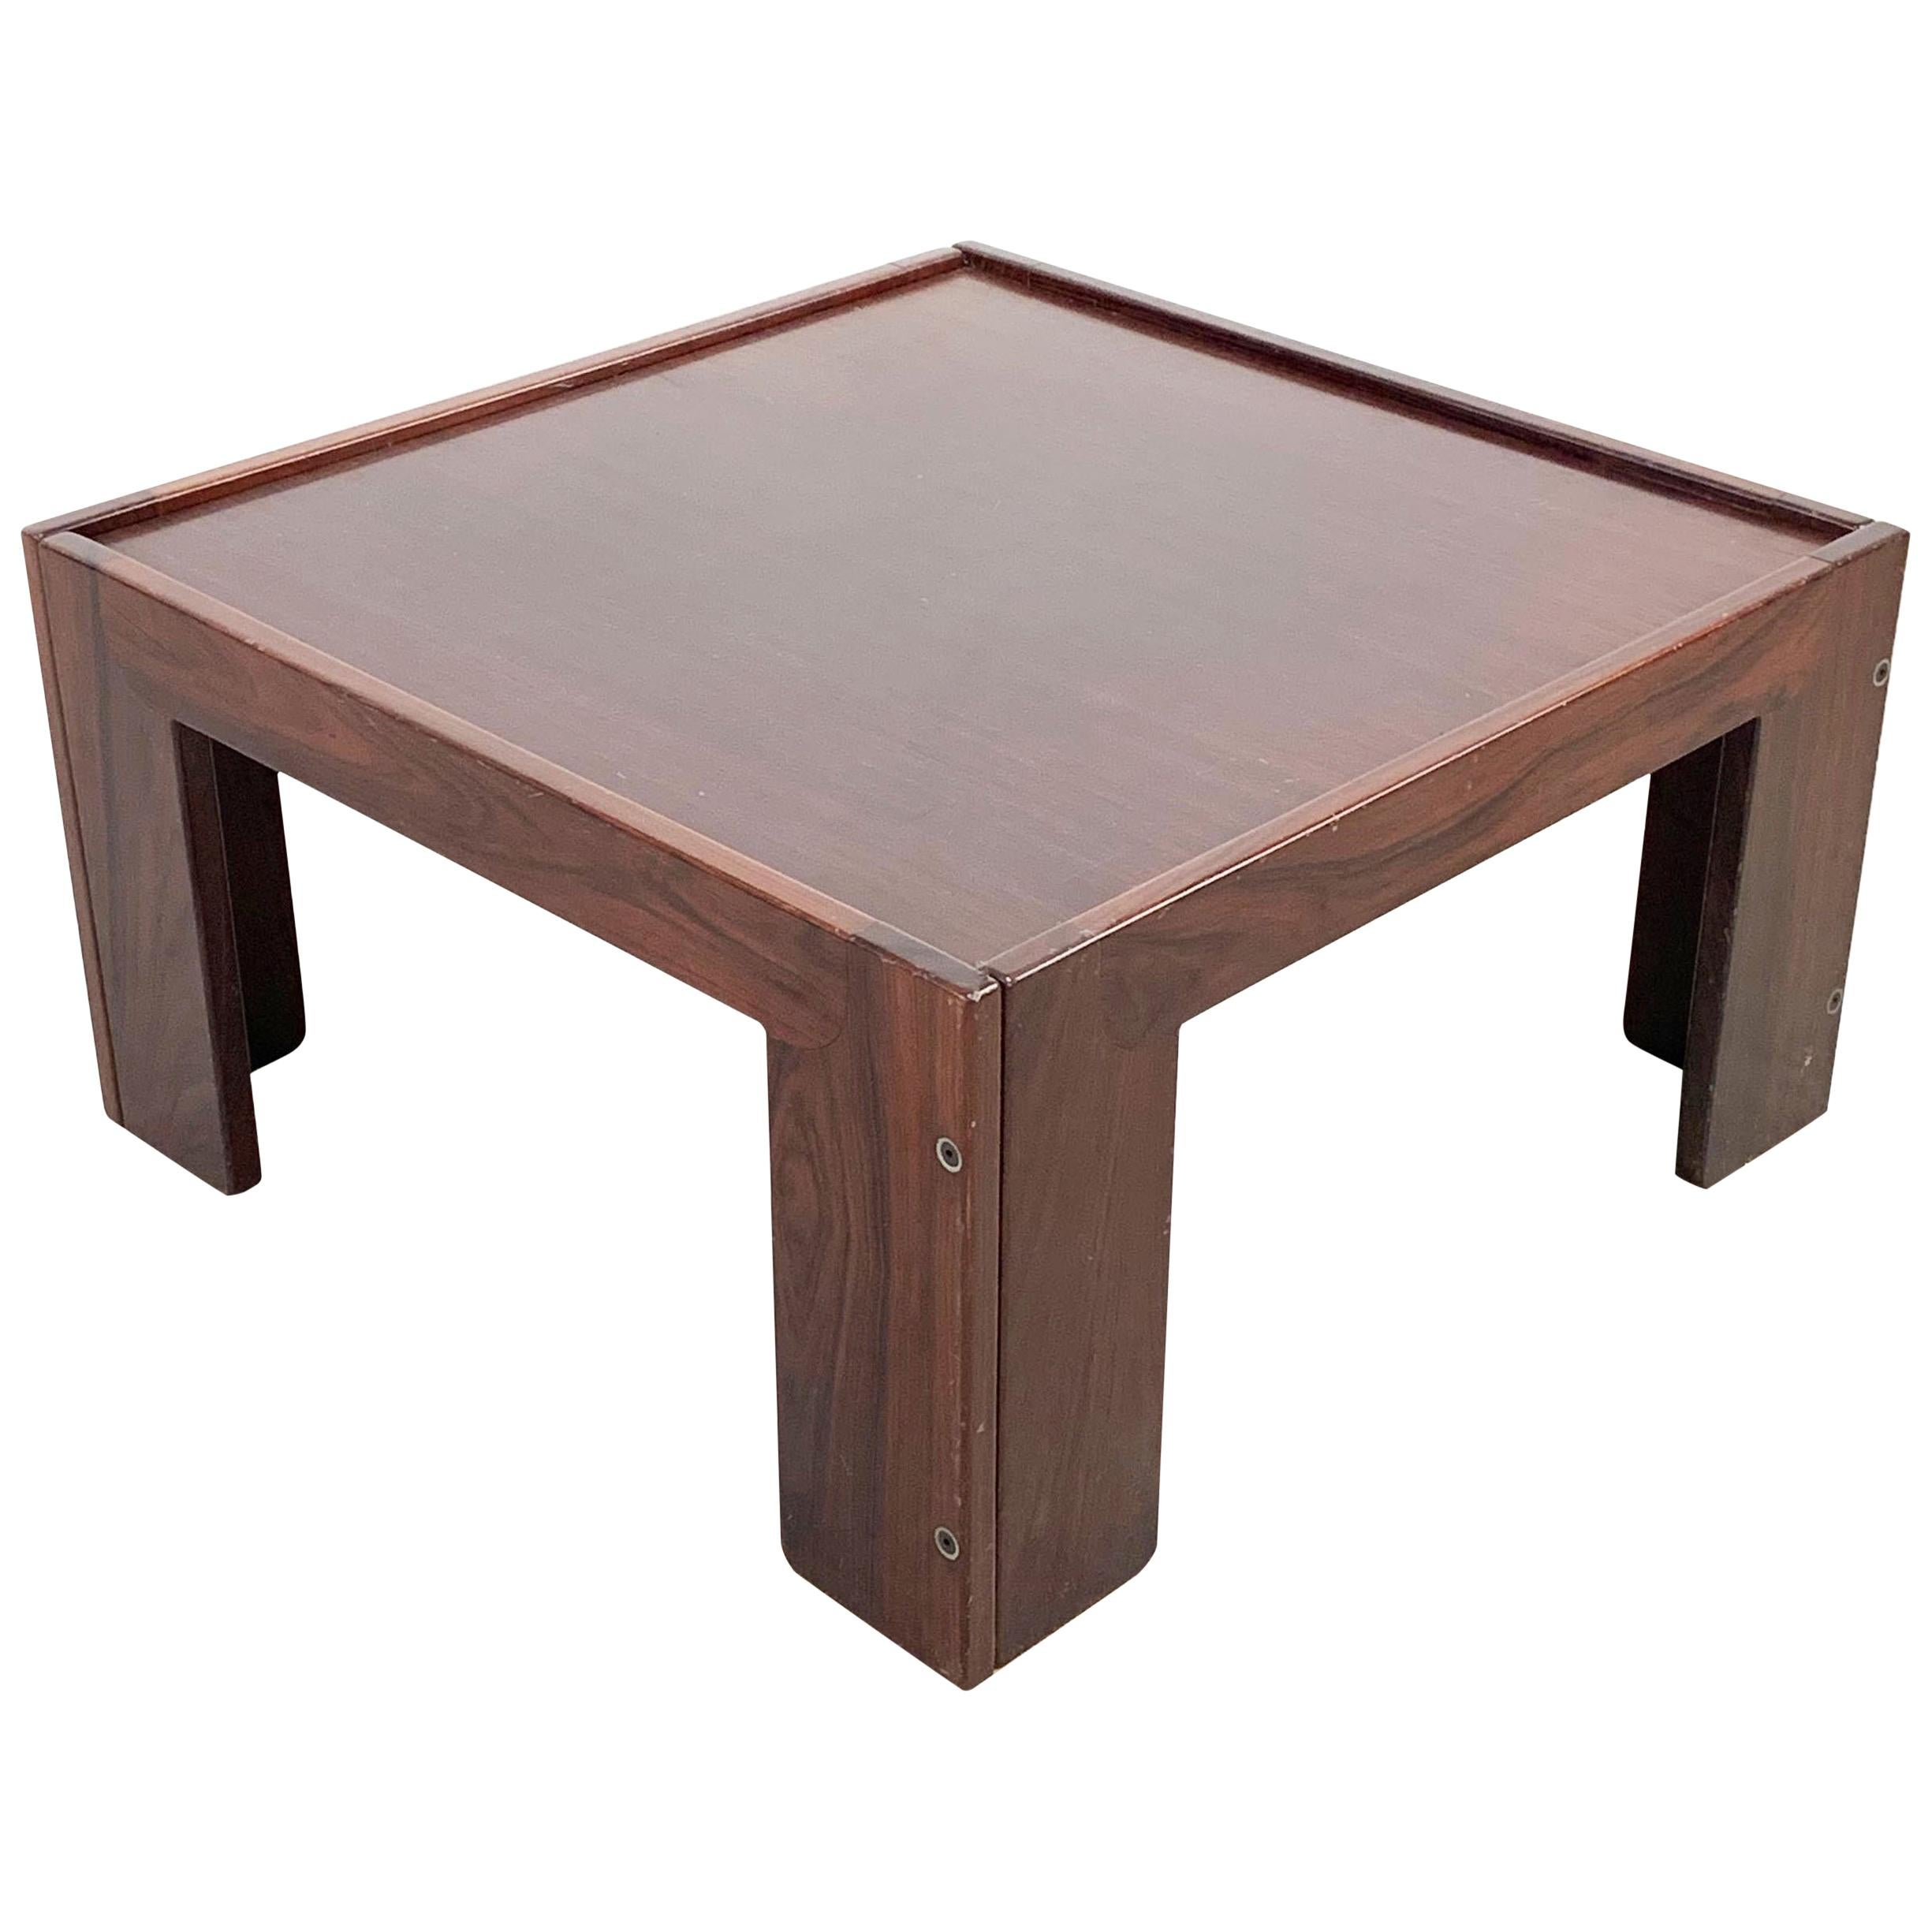 Afra and Tobia Scarpa, Square Table, for Cassina, Italy, 1970s